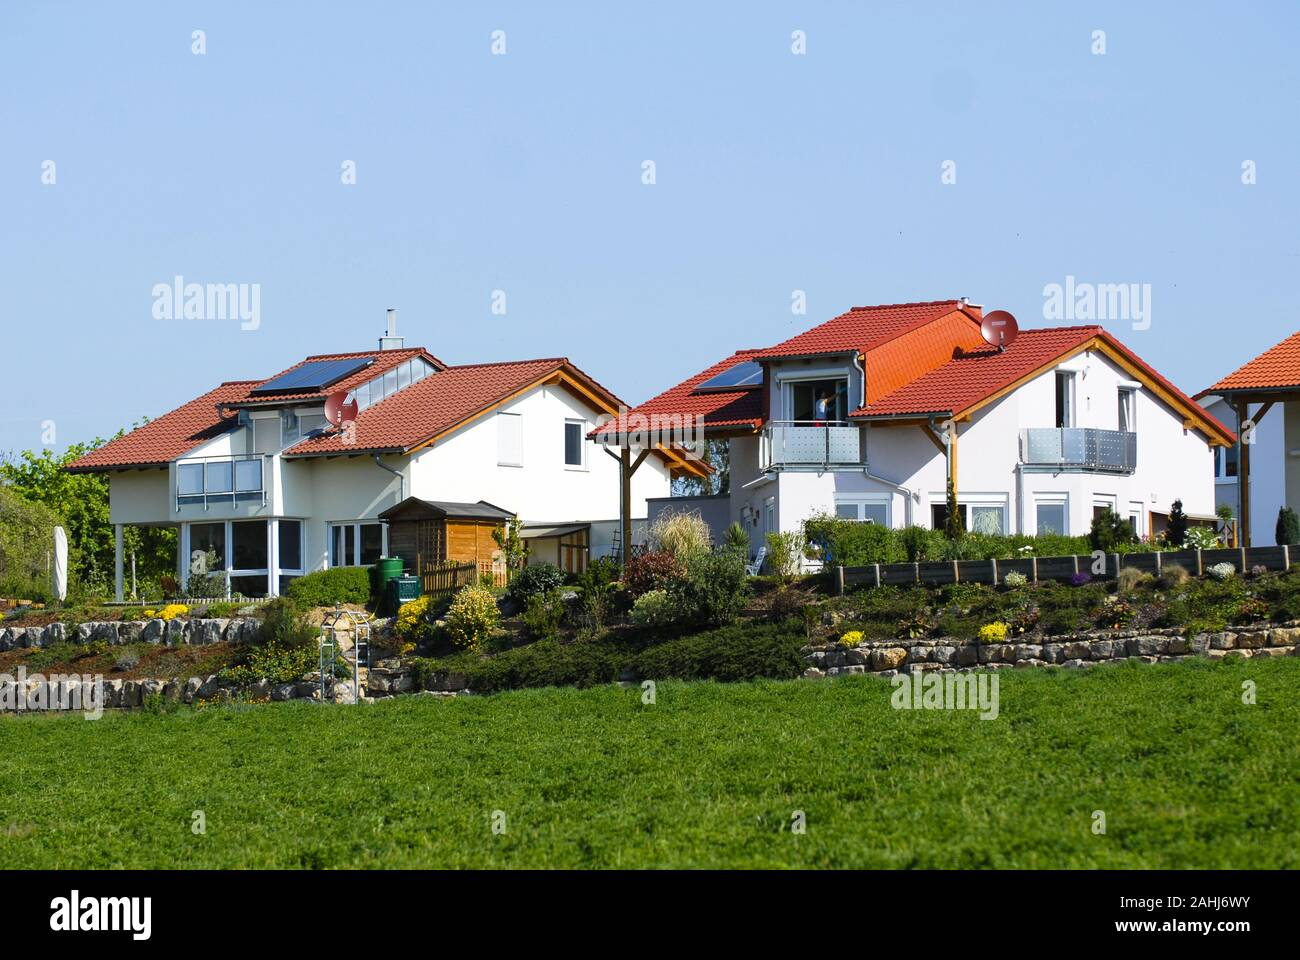 Einfamilienhaus Neubau Modern Einfamilienhaus Modern High Resolution Stock Photography And Images - Alamy